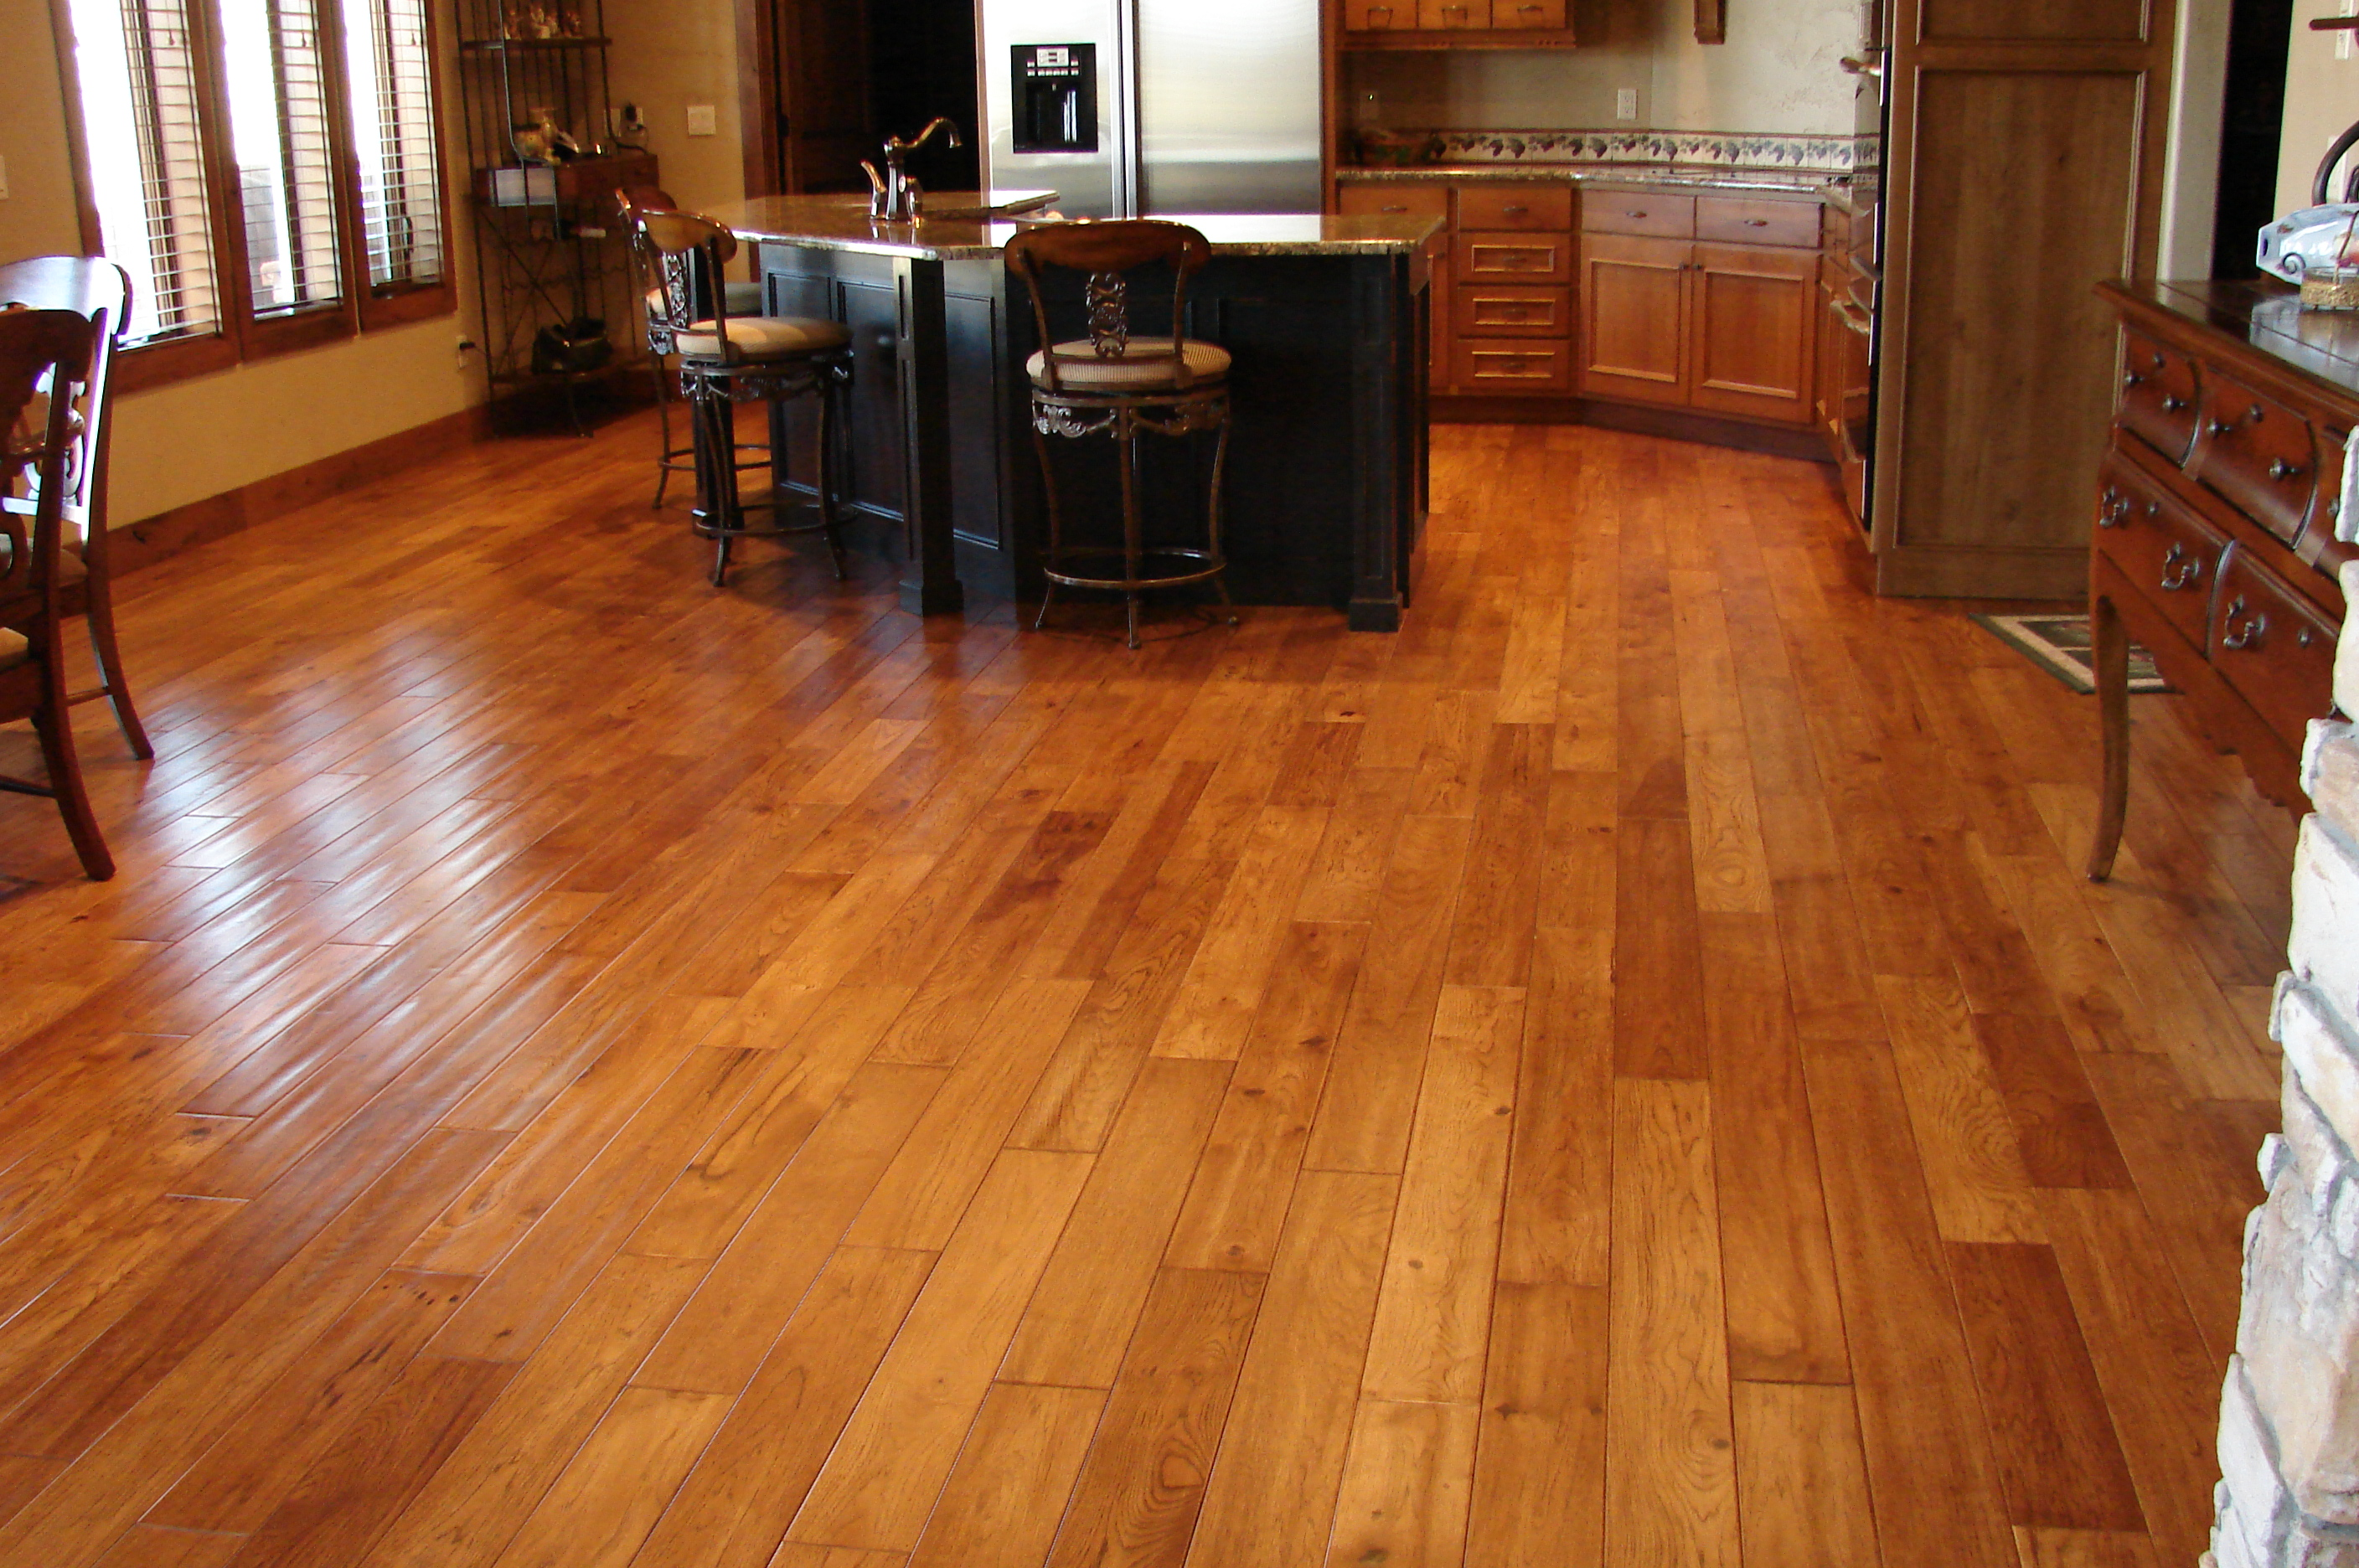 Hard flooring laminate flooring in lake charles QLGYGEW